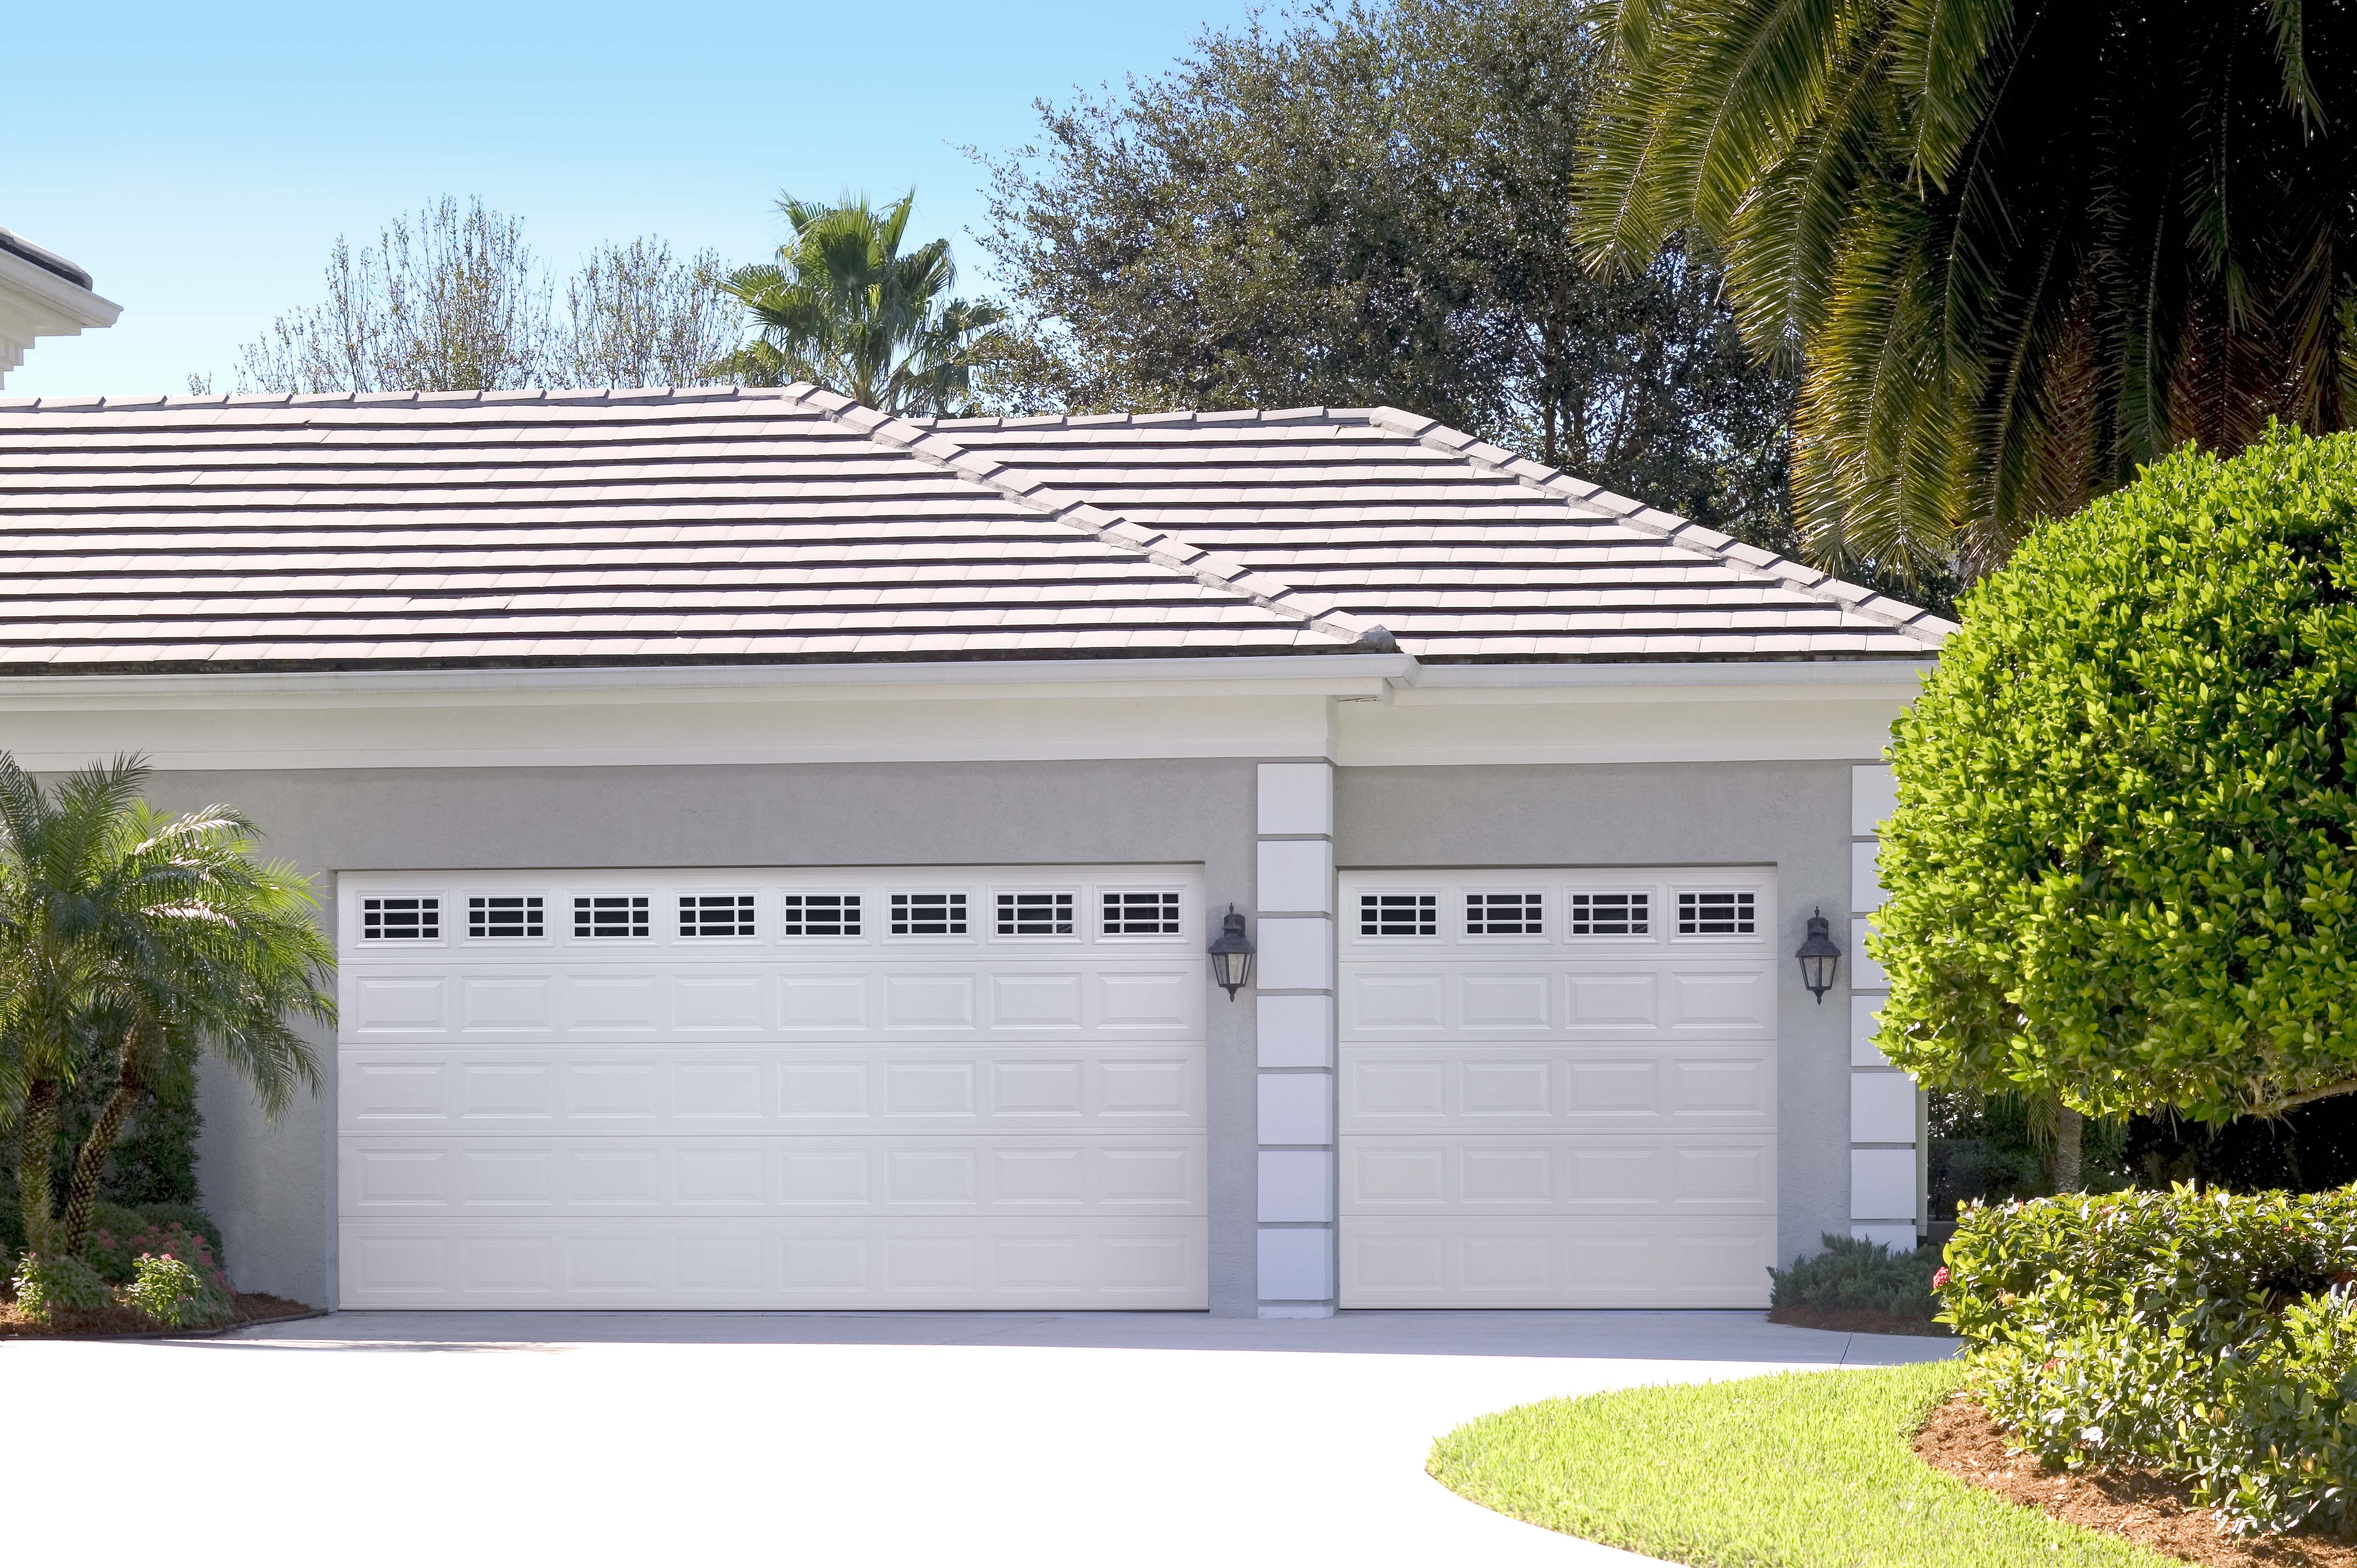 Amarr Short Panel Garage Door In True White With Prairie Windows. Available  In Olympus,